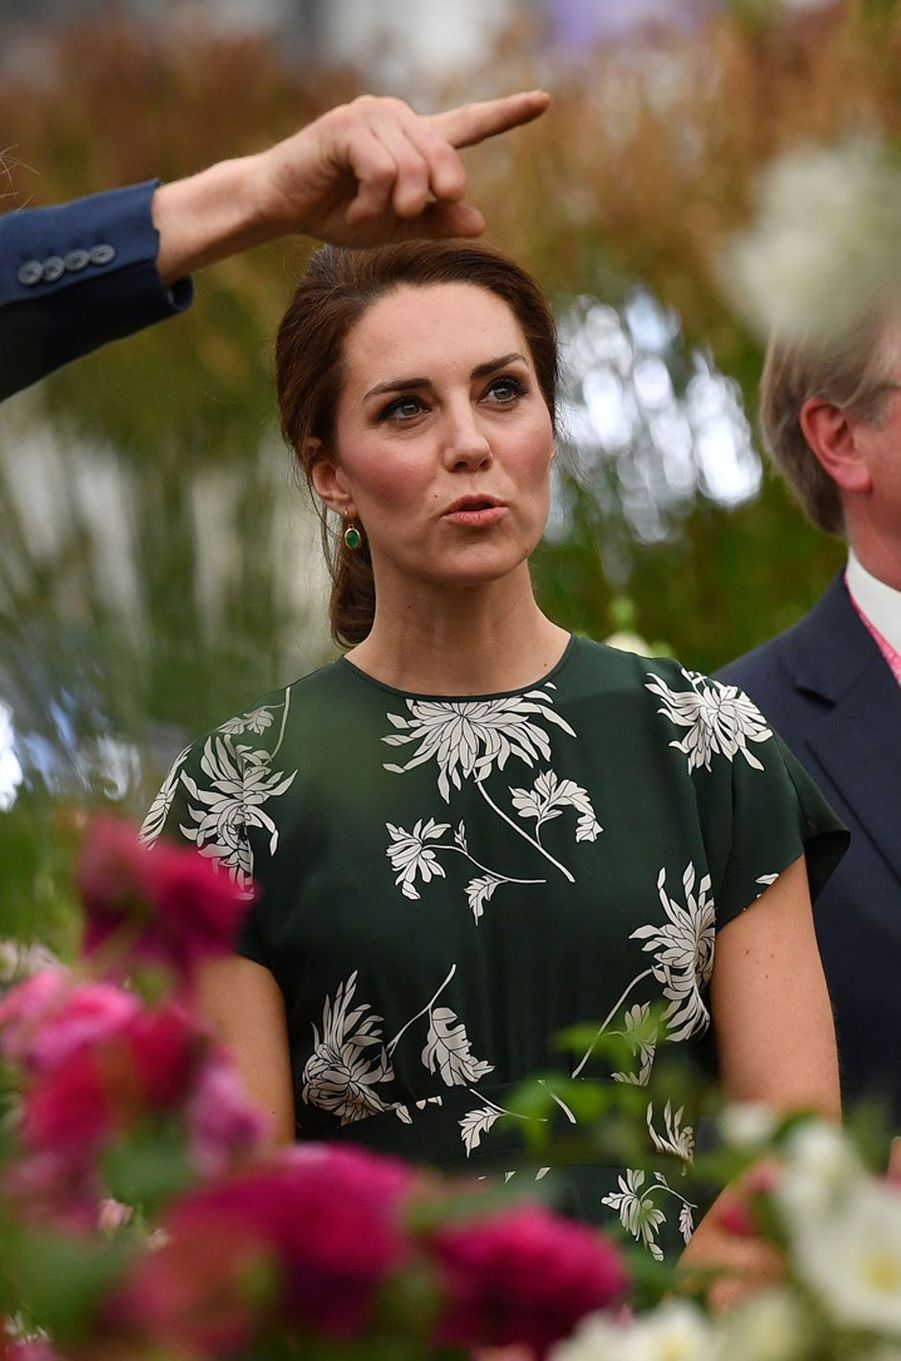 La duchesse Catherine de Cambridge à Londres le 22 mai 2017